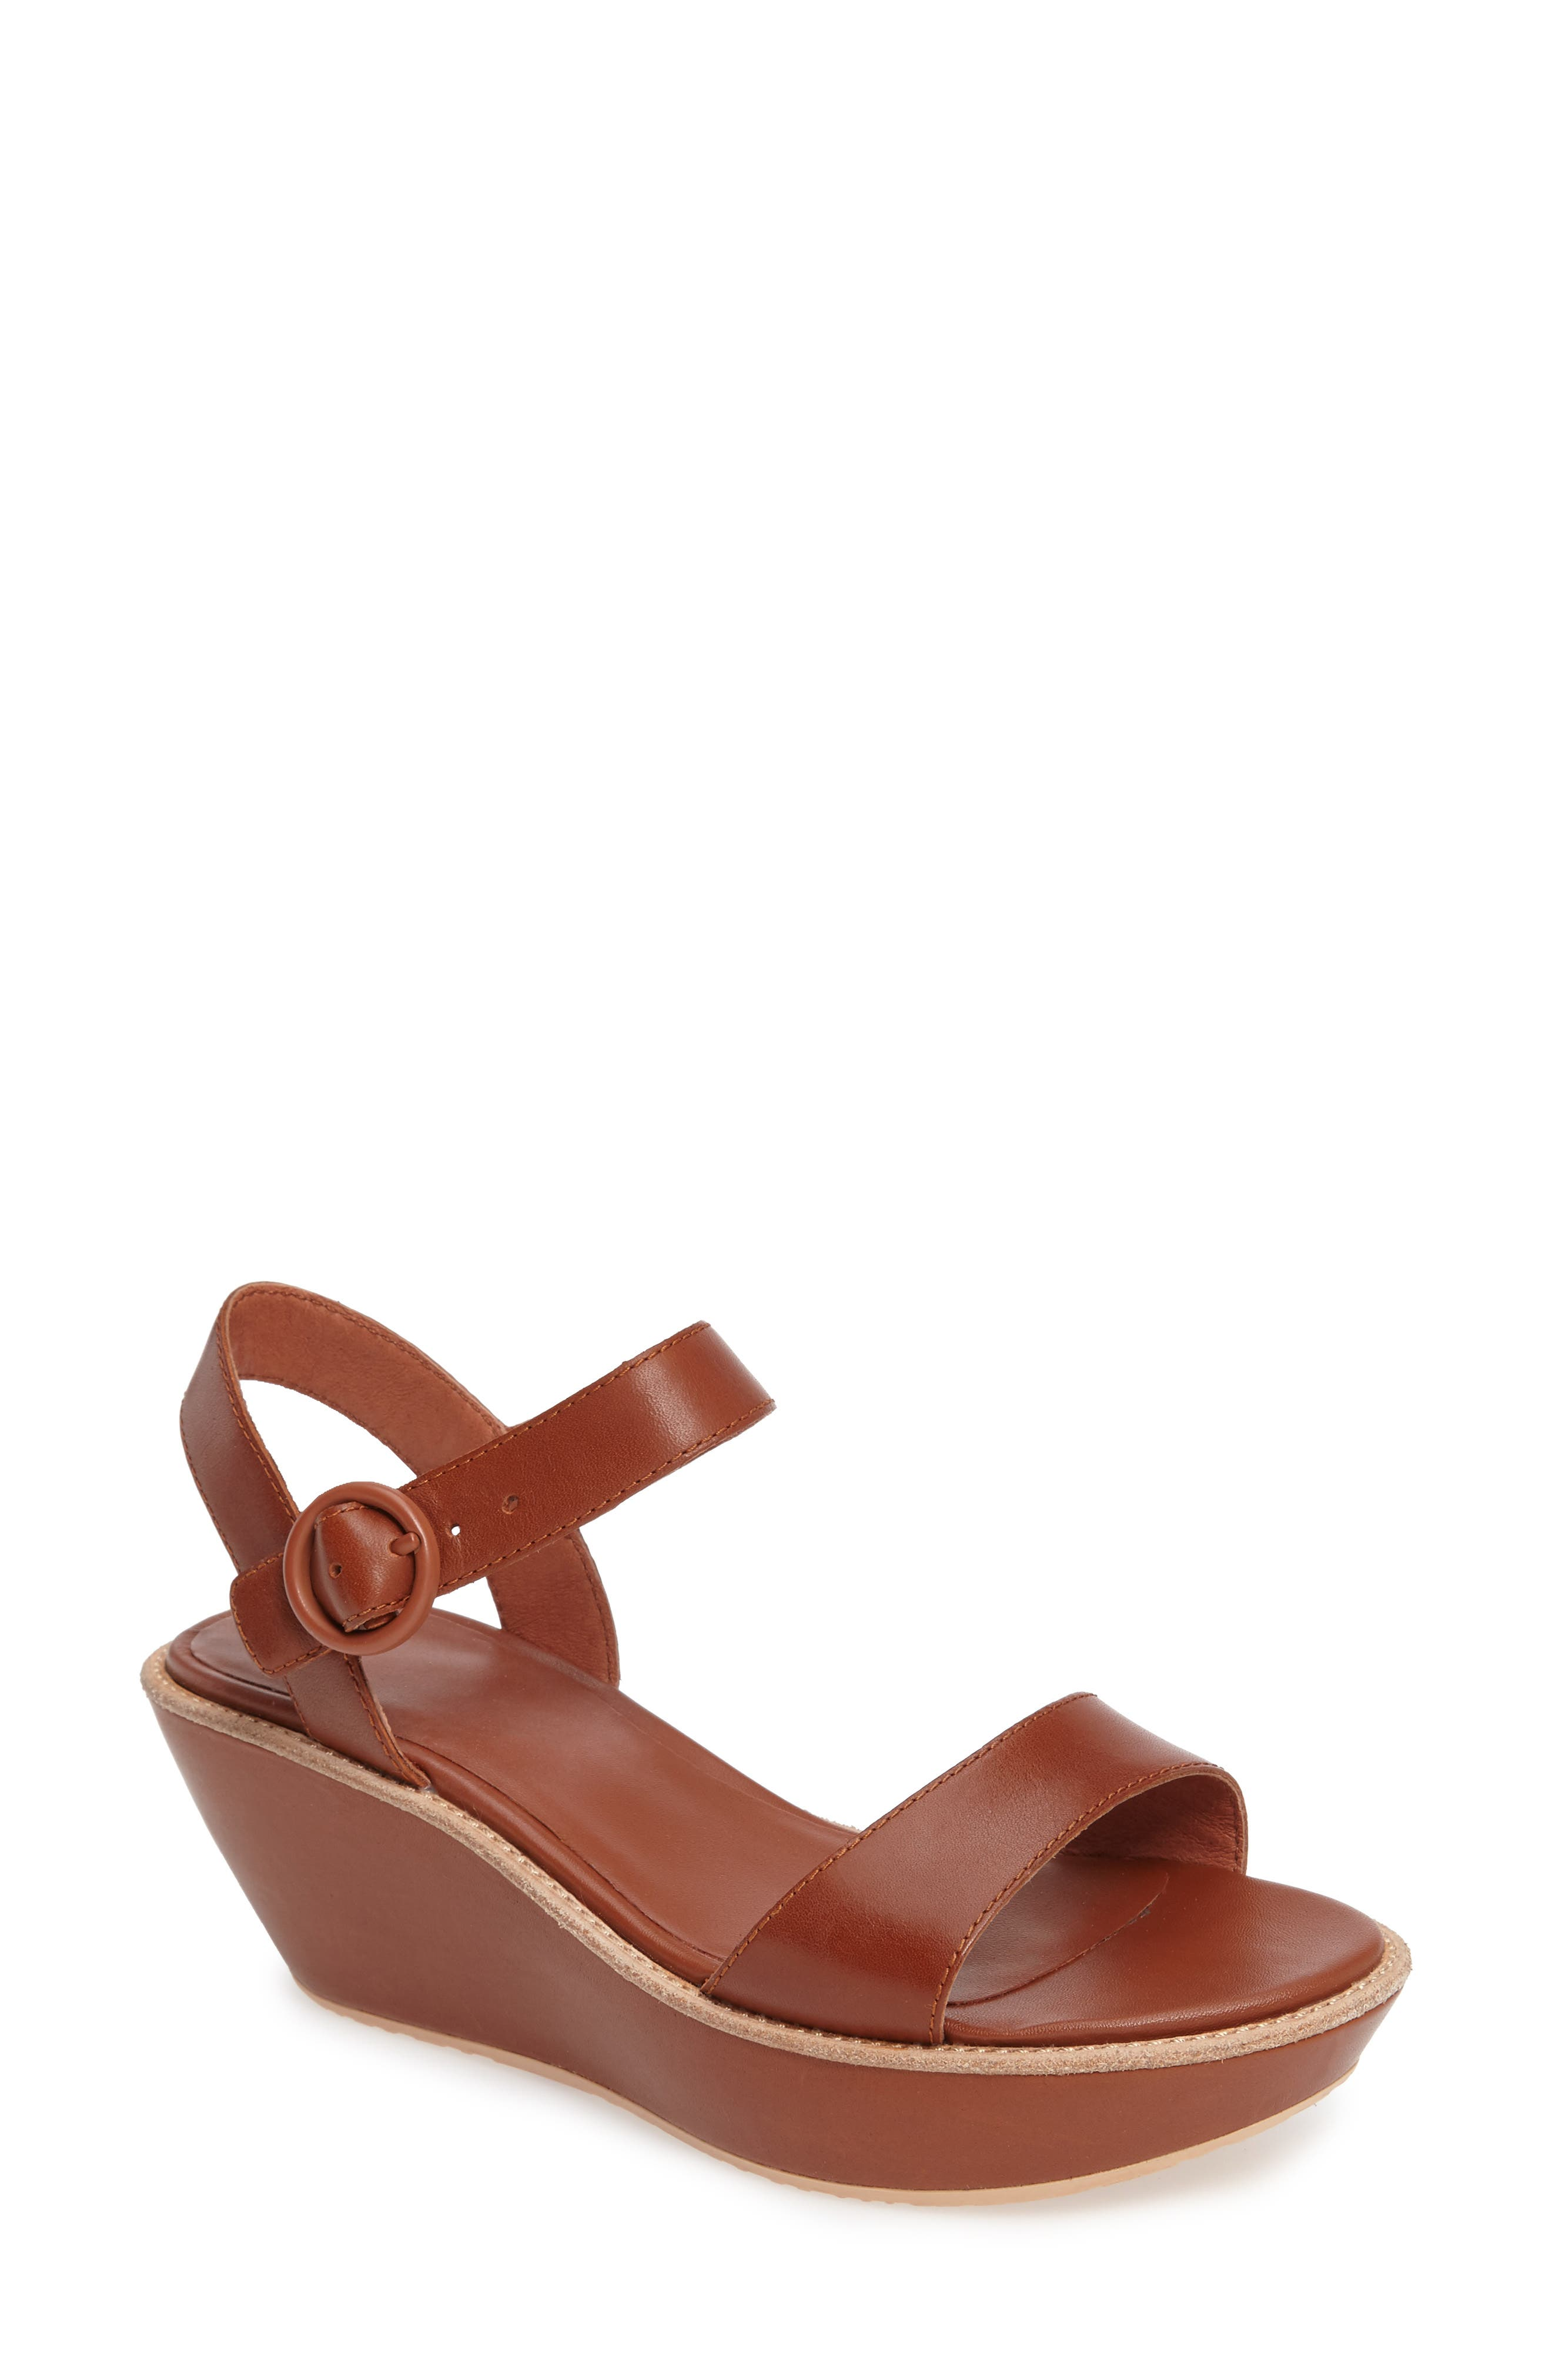 'Damas' Wedge Sandal,                         Main,                         color, Brown Leather